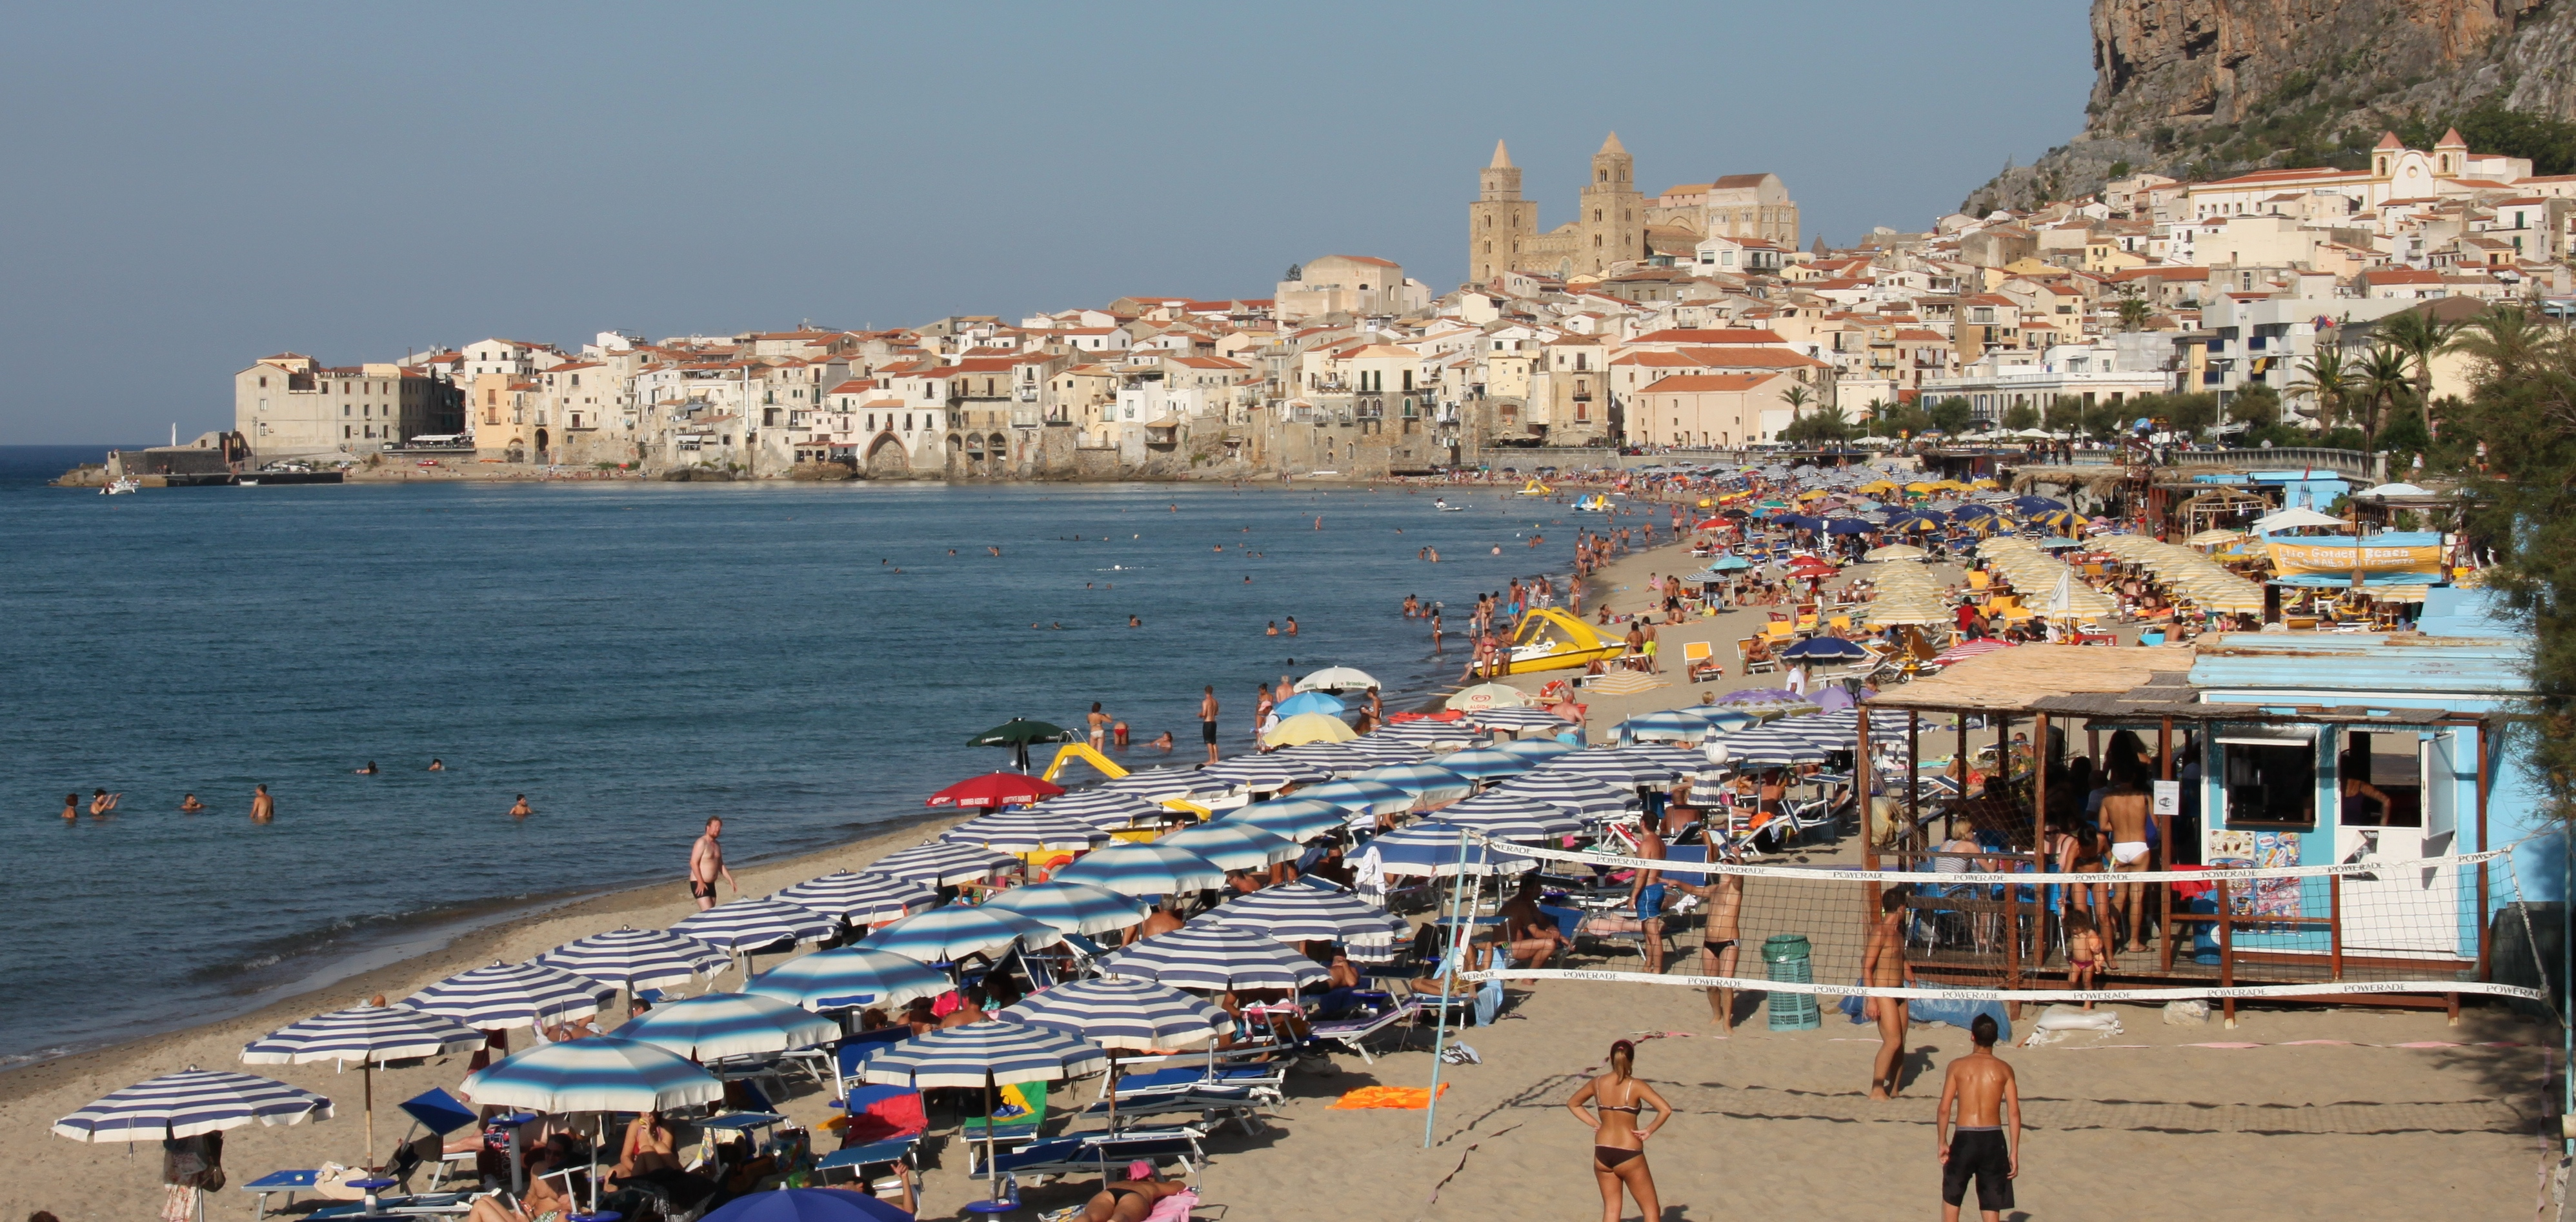 Sun, sea and sand on August holidays in Cefalù, Sicily